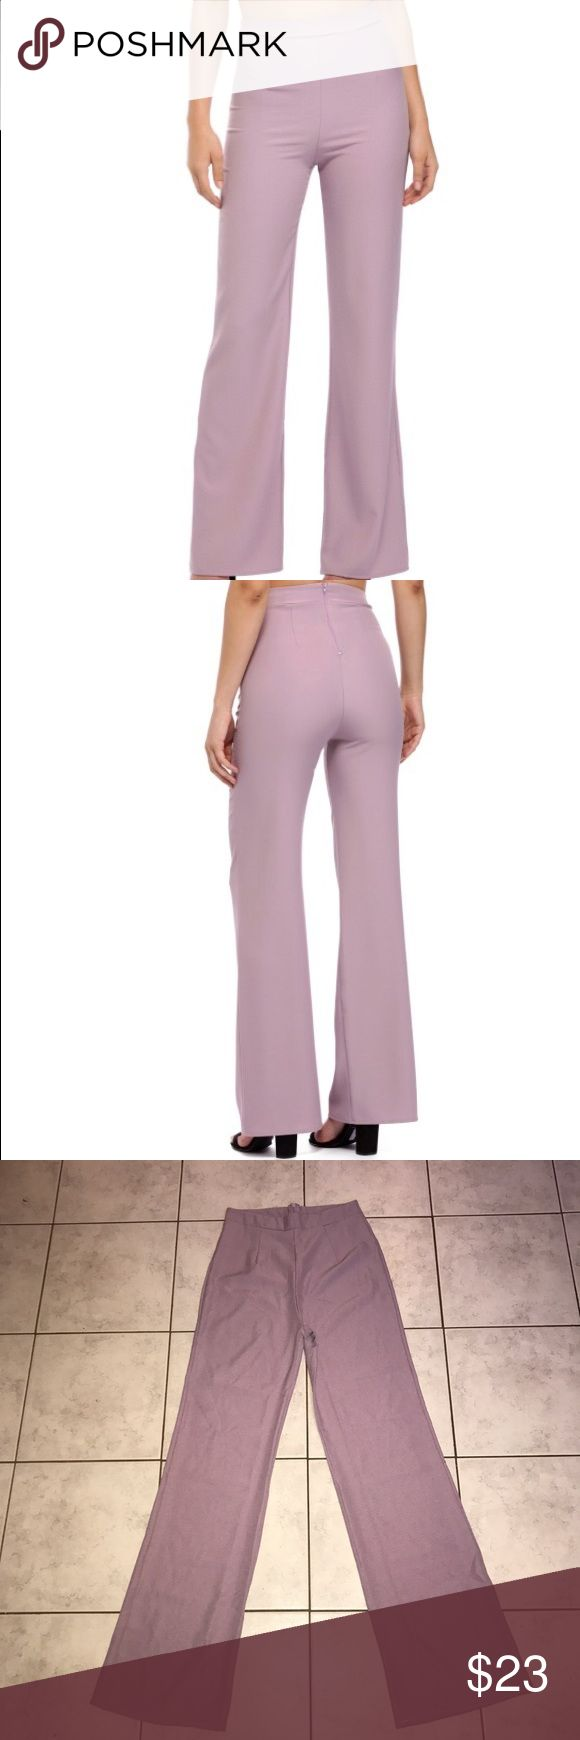 "Windsor store all that class high waist pants Windsor store all that class high waisted wide leg dress pants in lavender. New with tags. Inseam 31"" rise 12"" waist 12.5"". Size small. WINDSOR Pants Wide Leg"